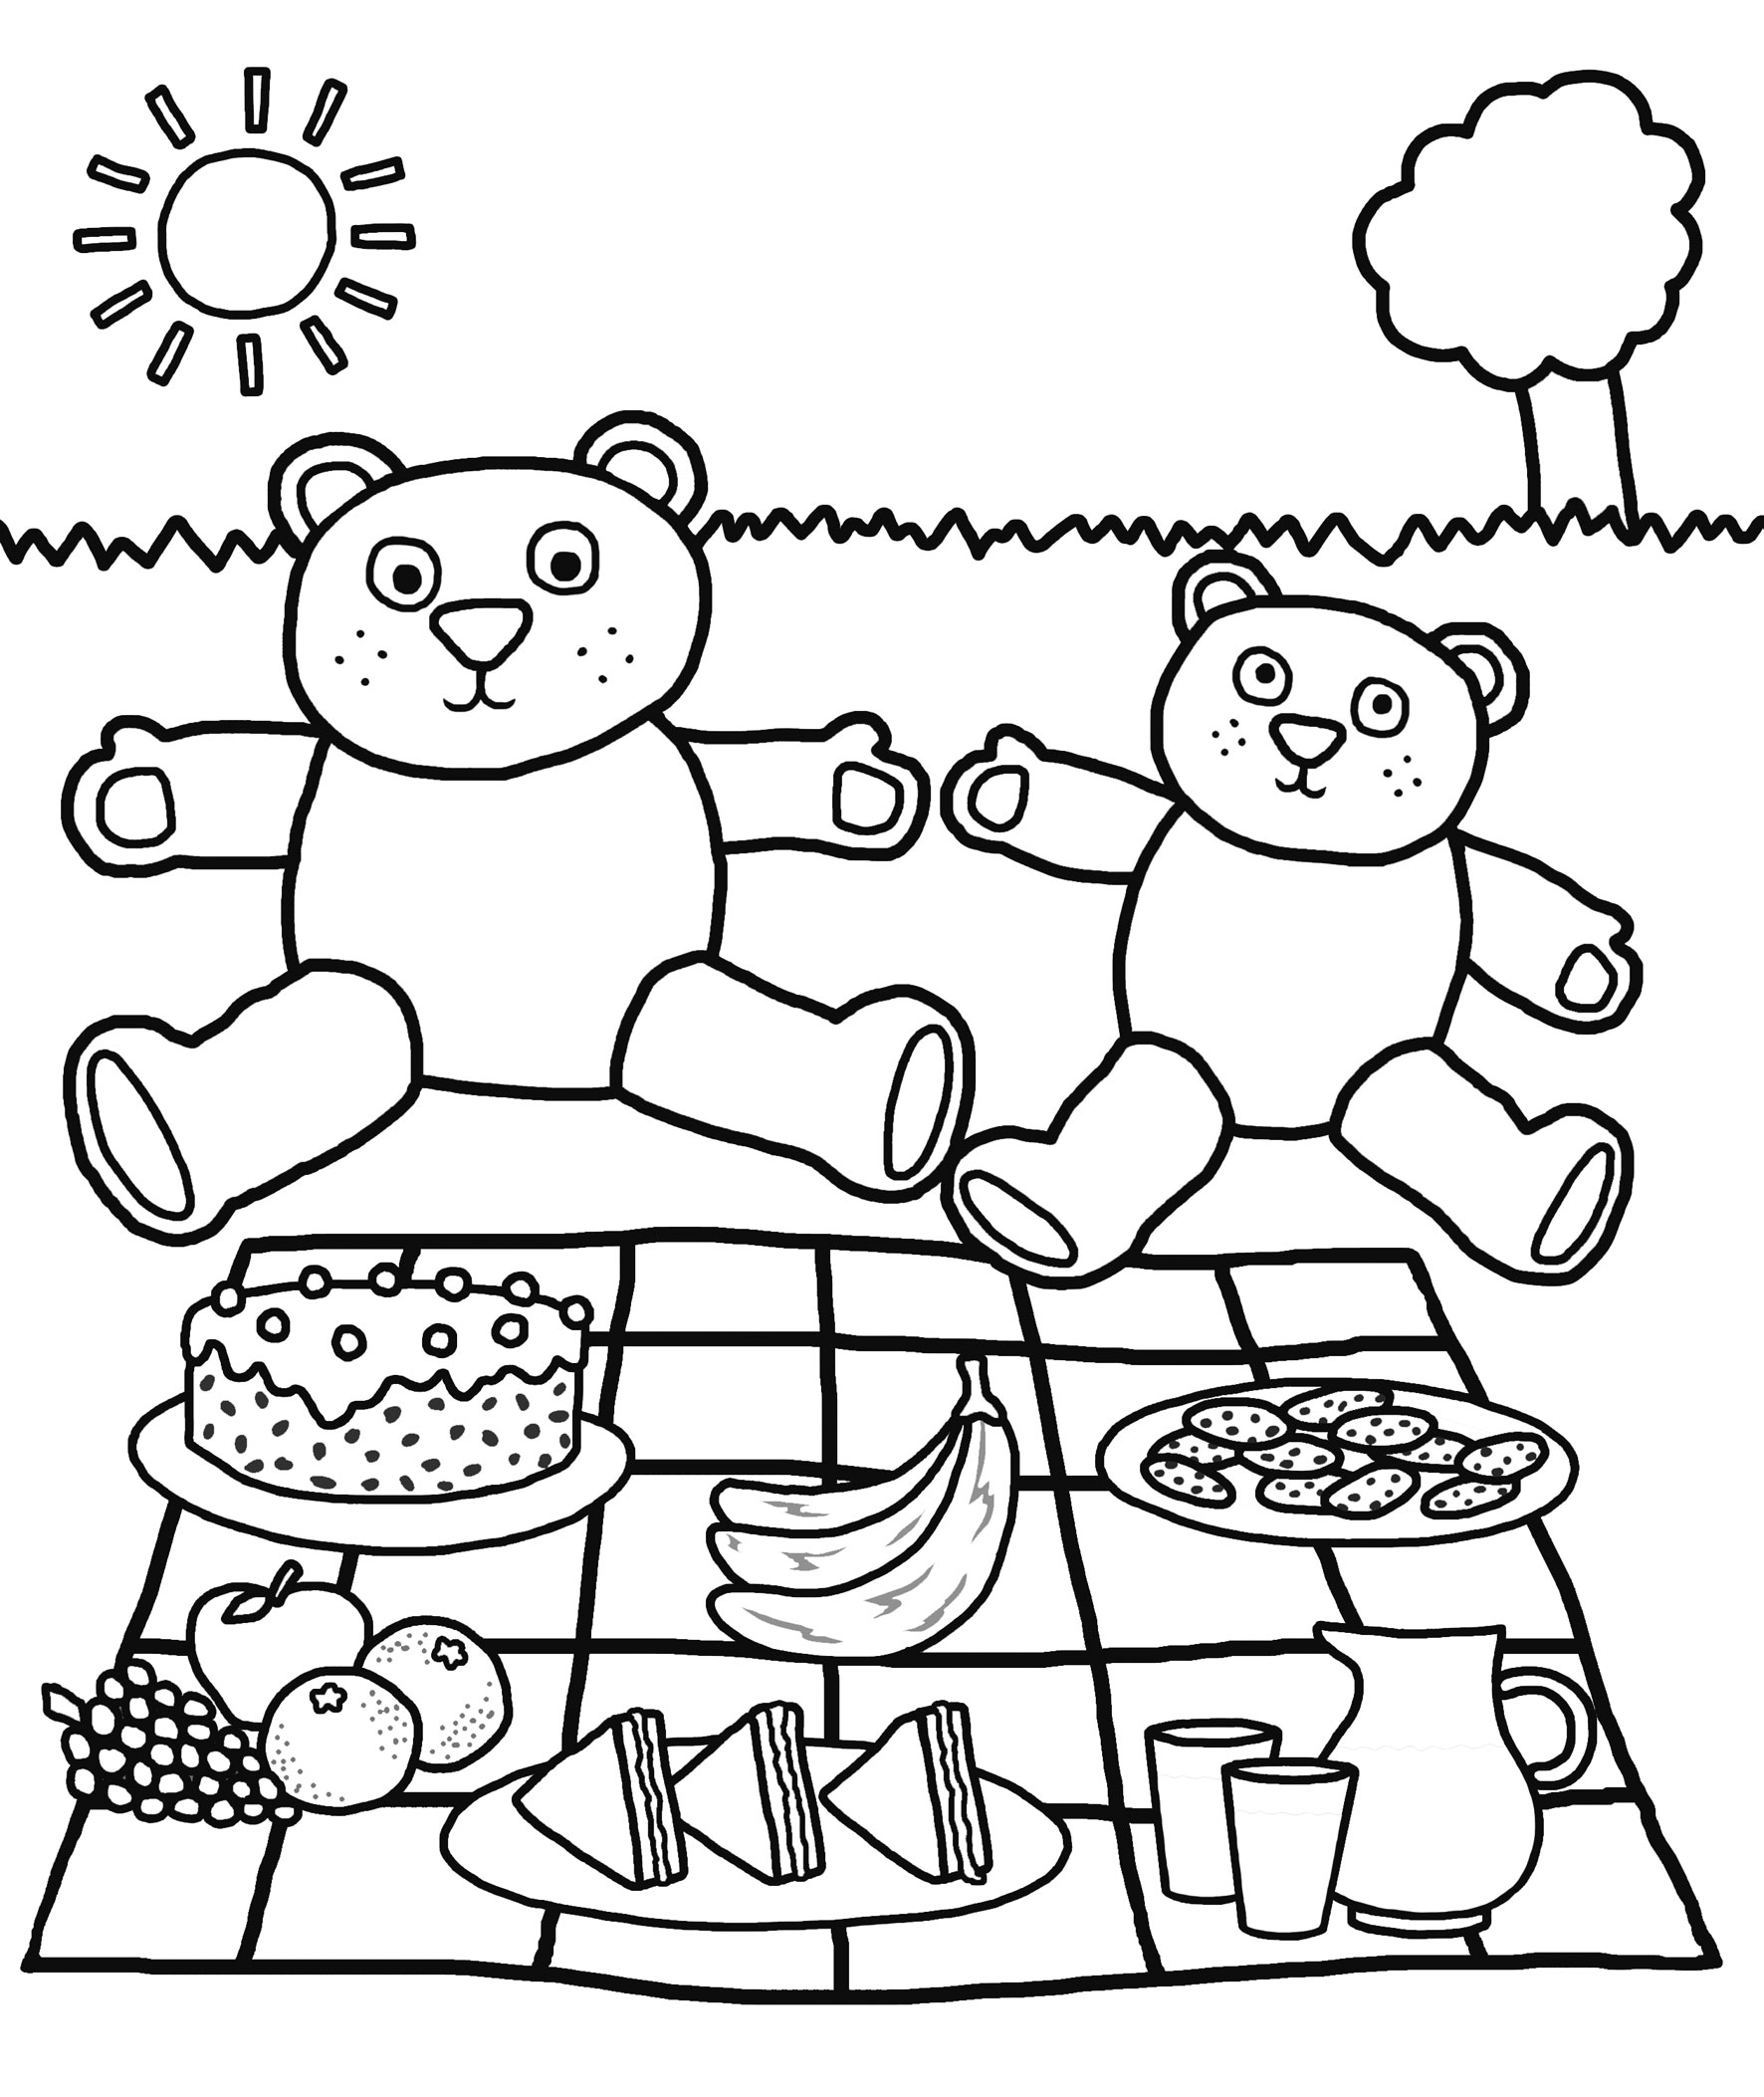 Kindergarten coloring worksheets free kindergarten for Activity coloring pages